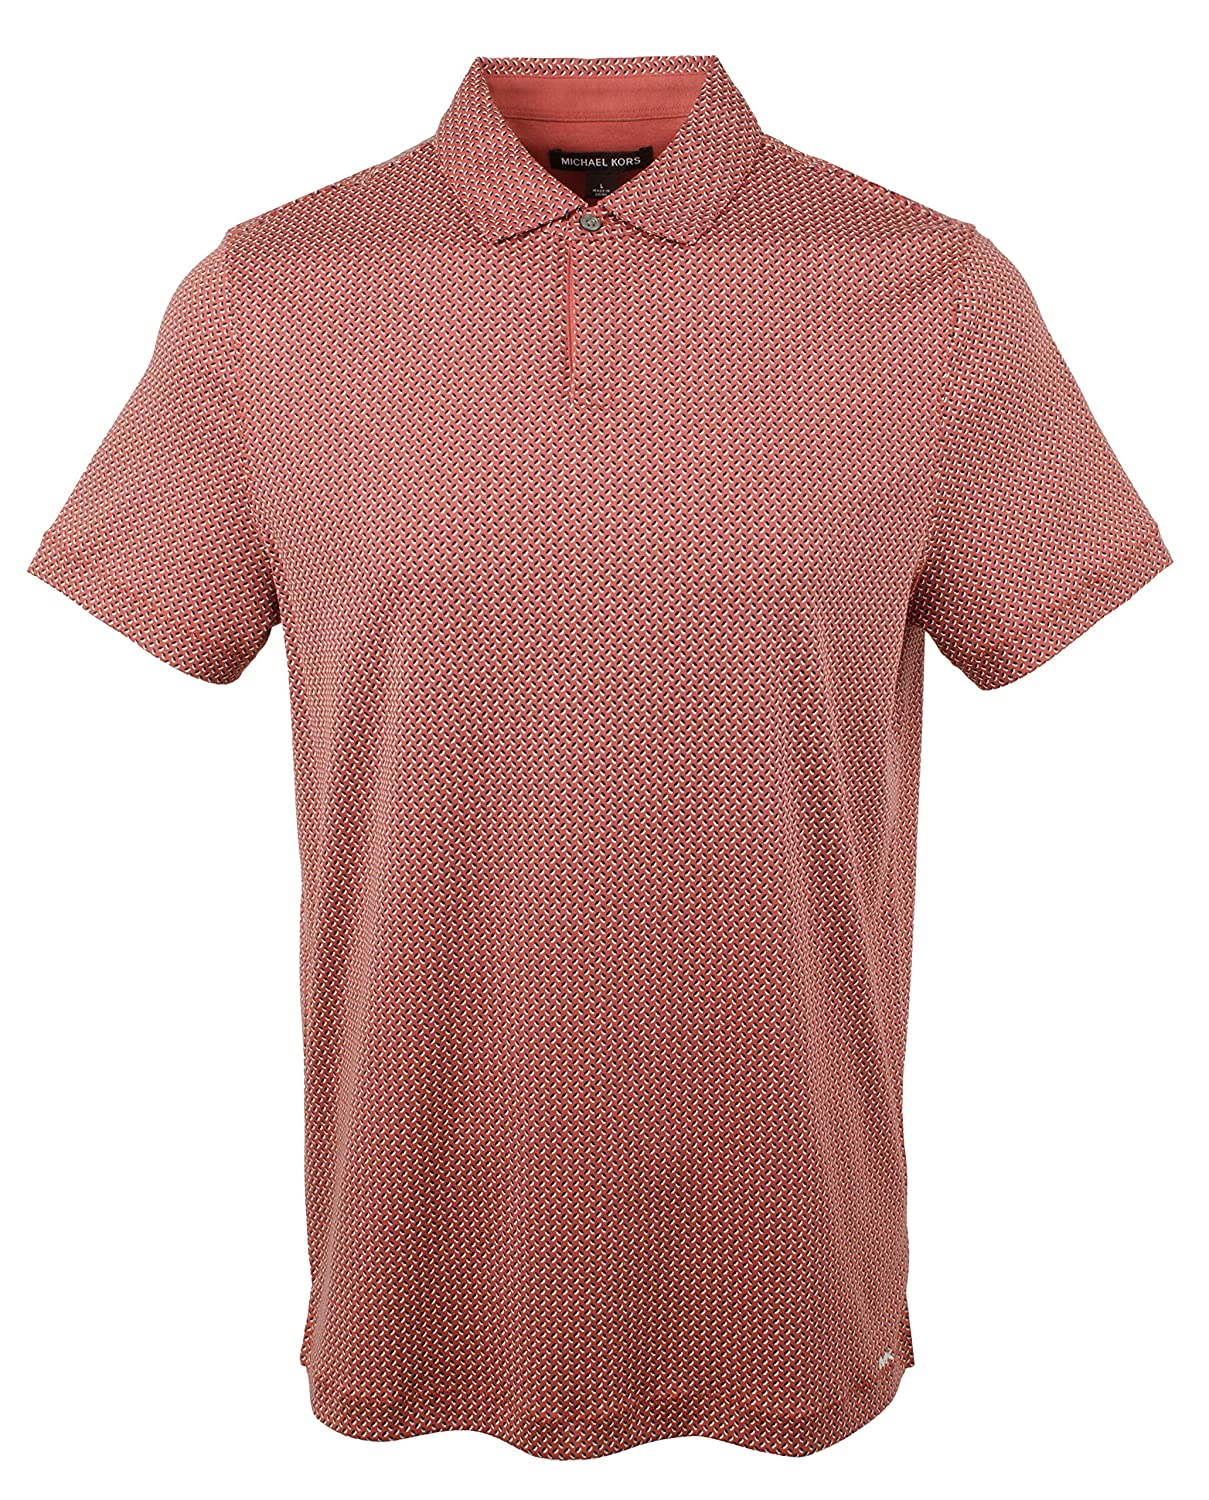 Michael Kors Mens Printed Interlock Polo Shirt-SR-S: Amazon.es ...